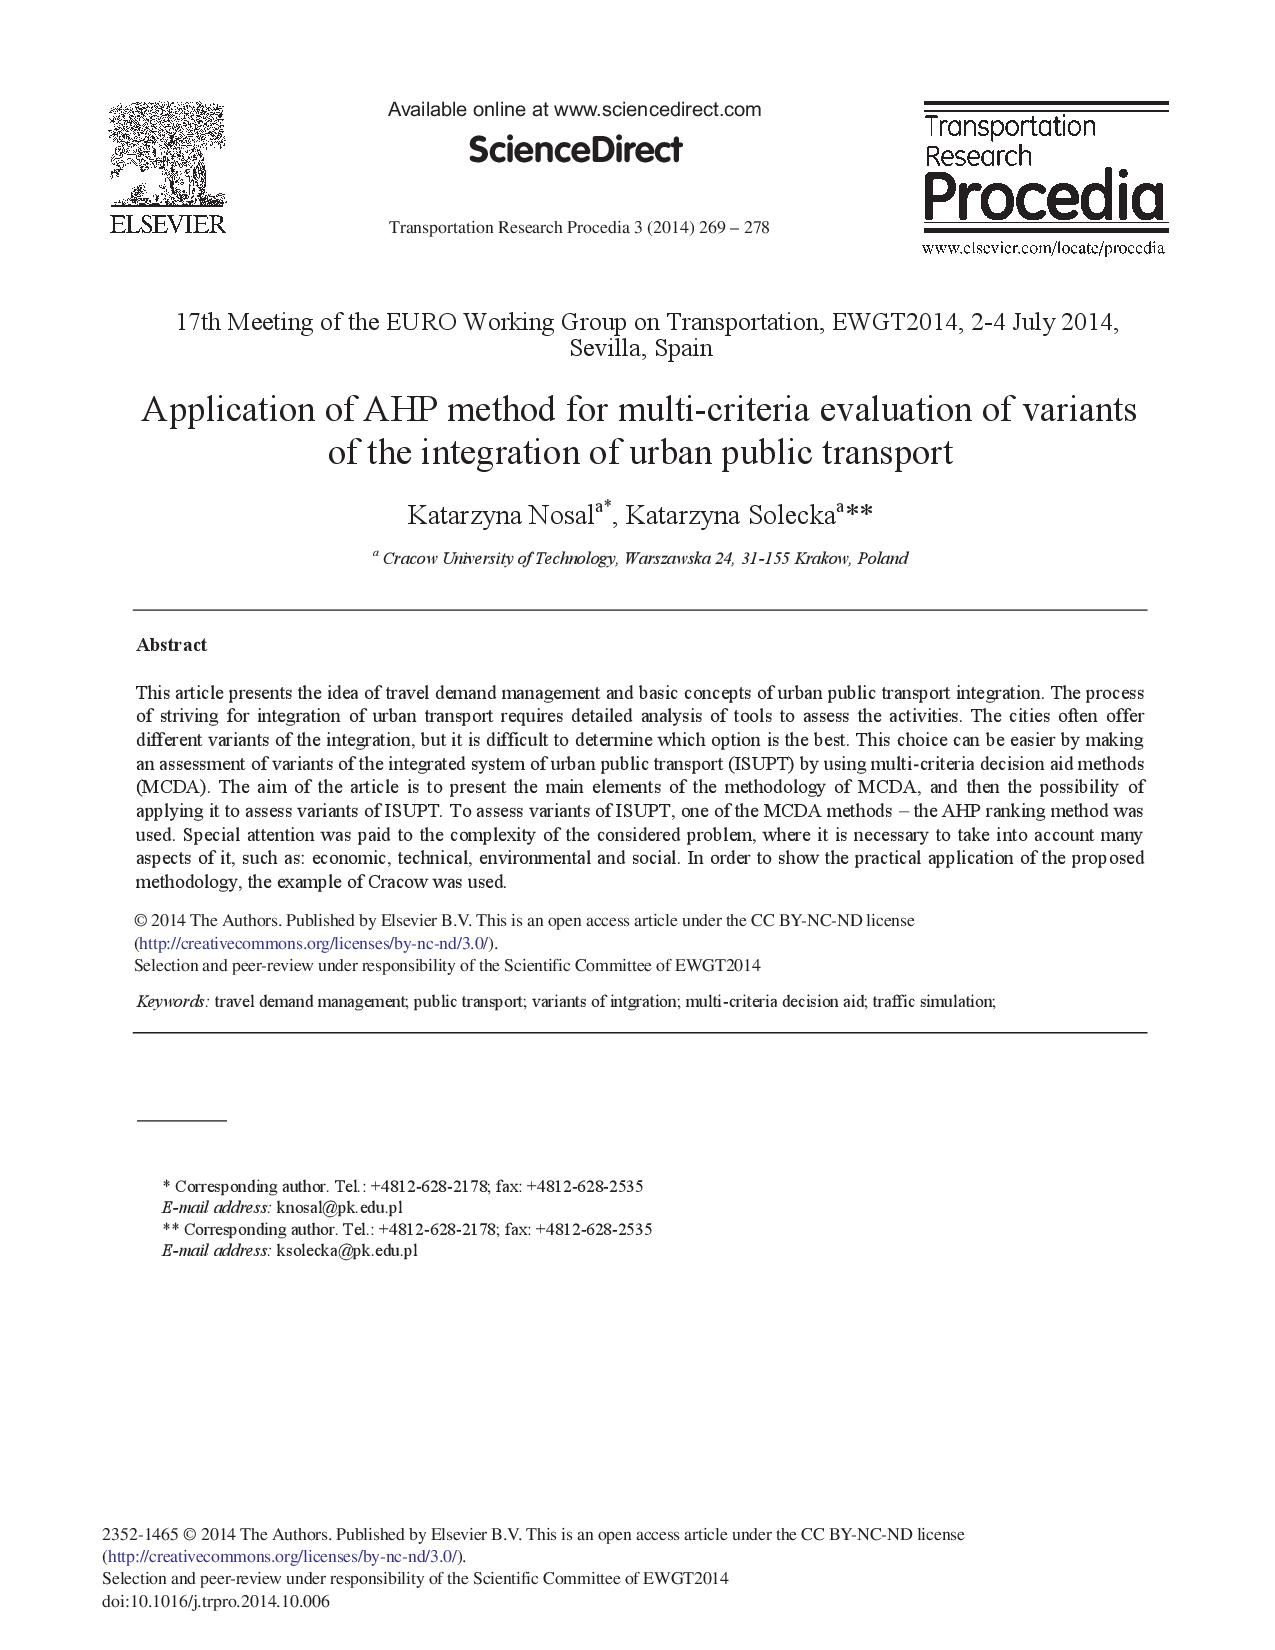 Application of AHP method for multi-criteria evaluation of variants of the integration of urban public transport